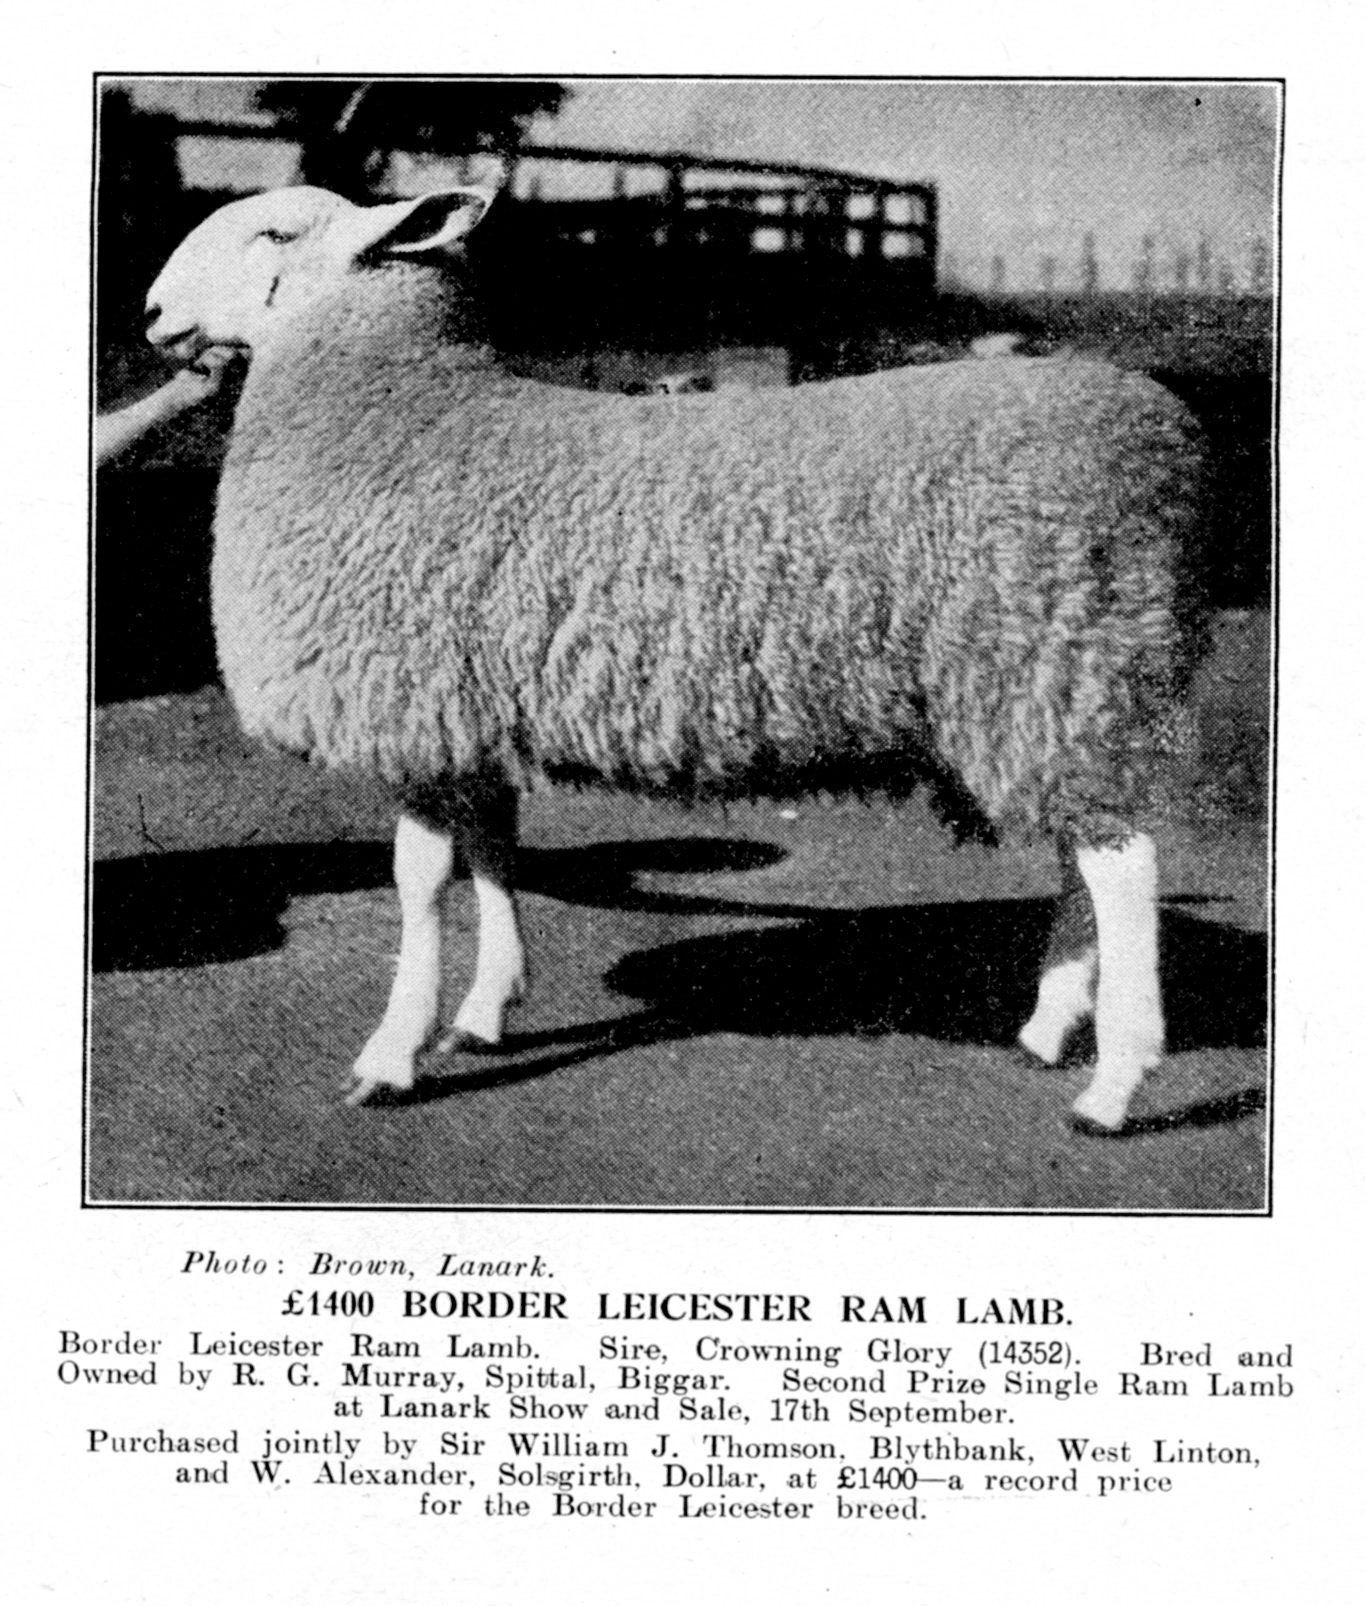 In 1947, this Border Leicester ram lamb from RG Murray, Spittal, Bigger, was bought jointly by Sir William Thomson, Blythbank, Wet Linton, and W Alexander, Solsgirth, Dollar, at a new breed record price of £1400